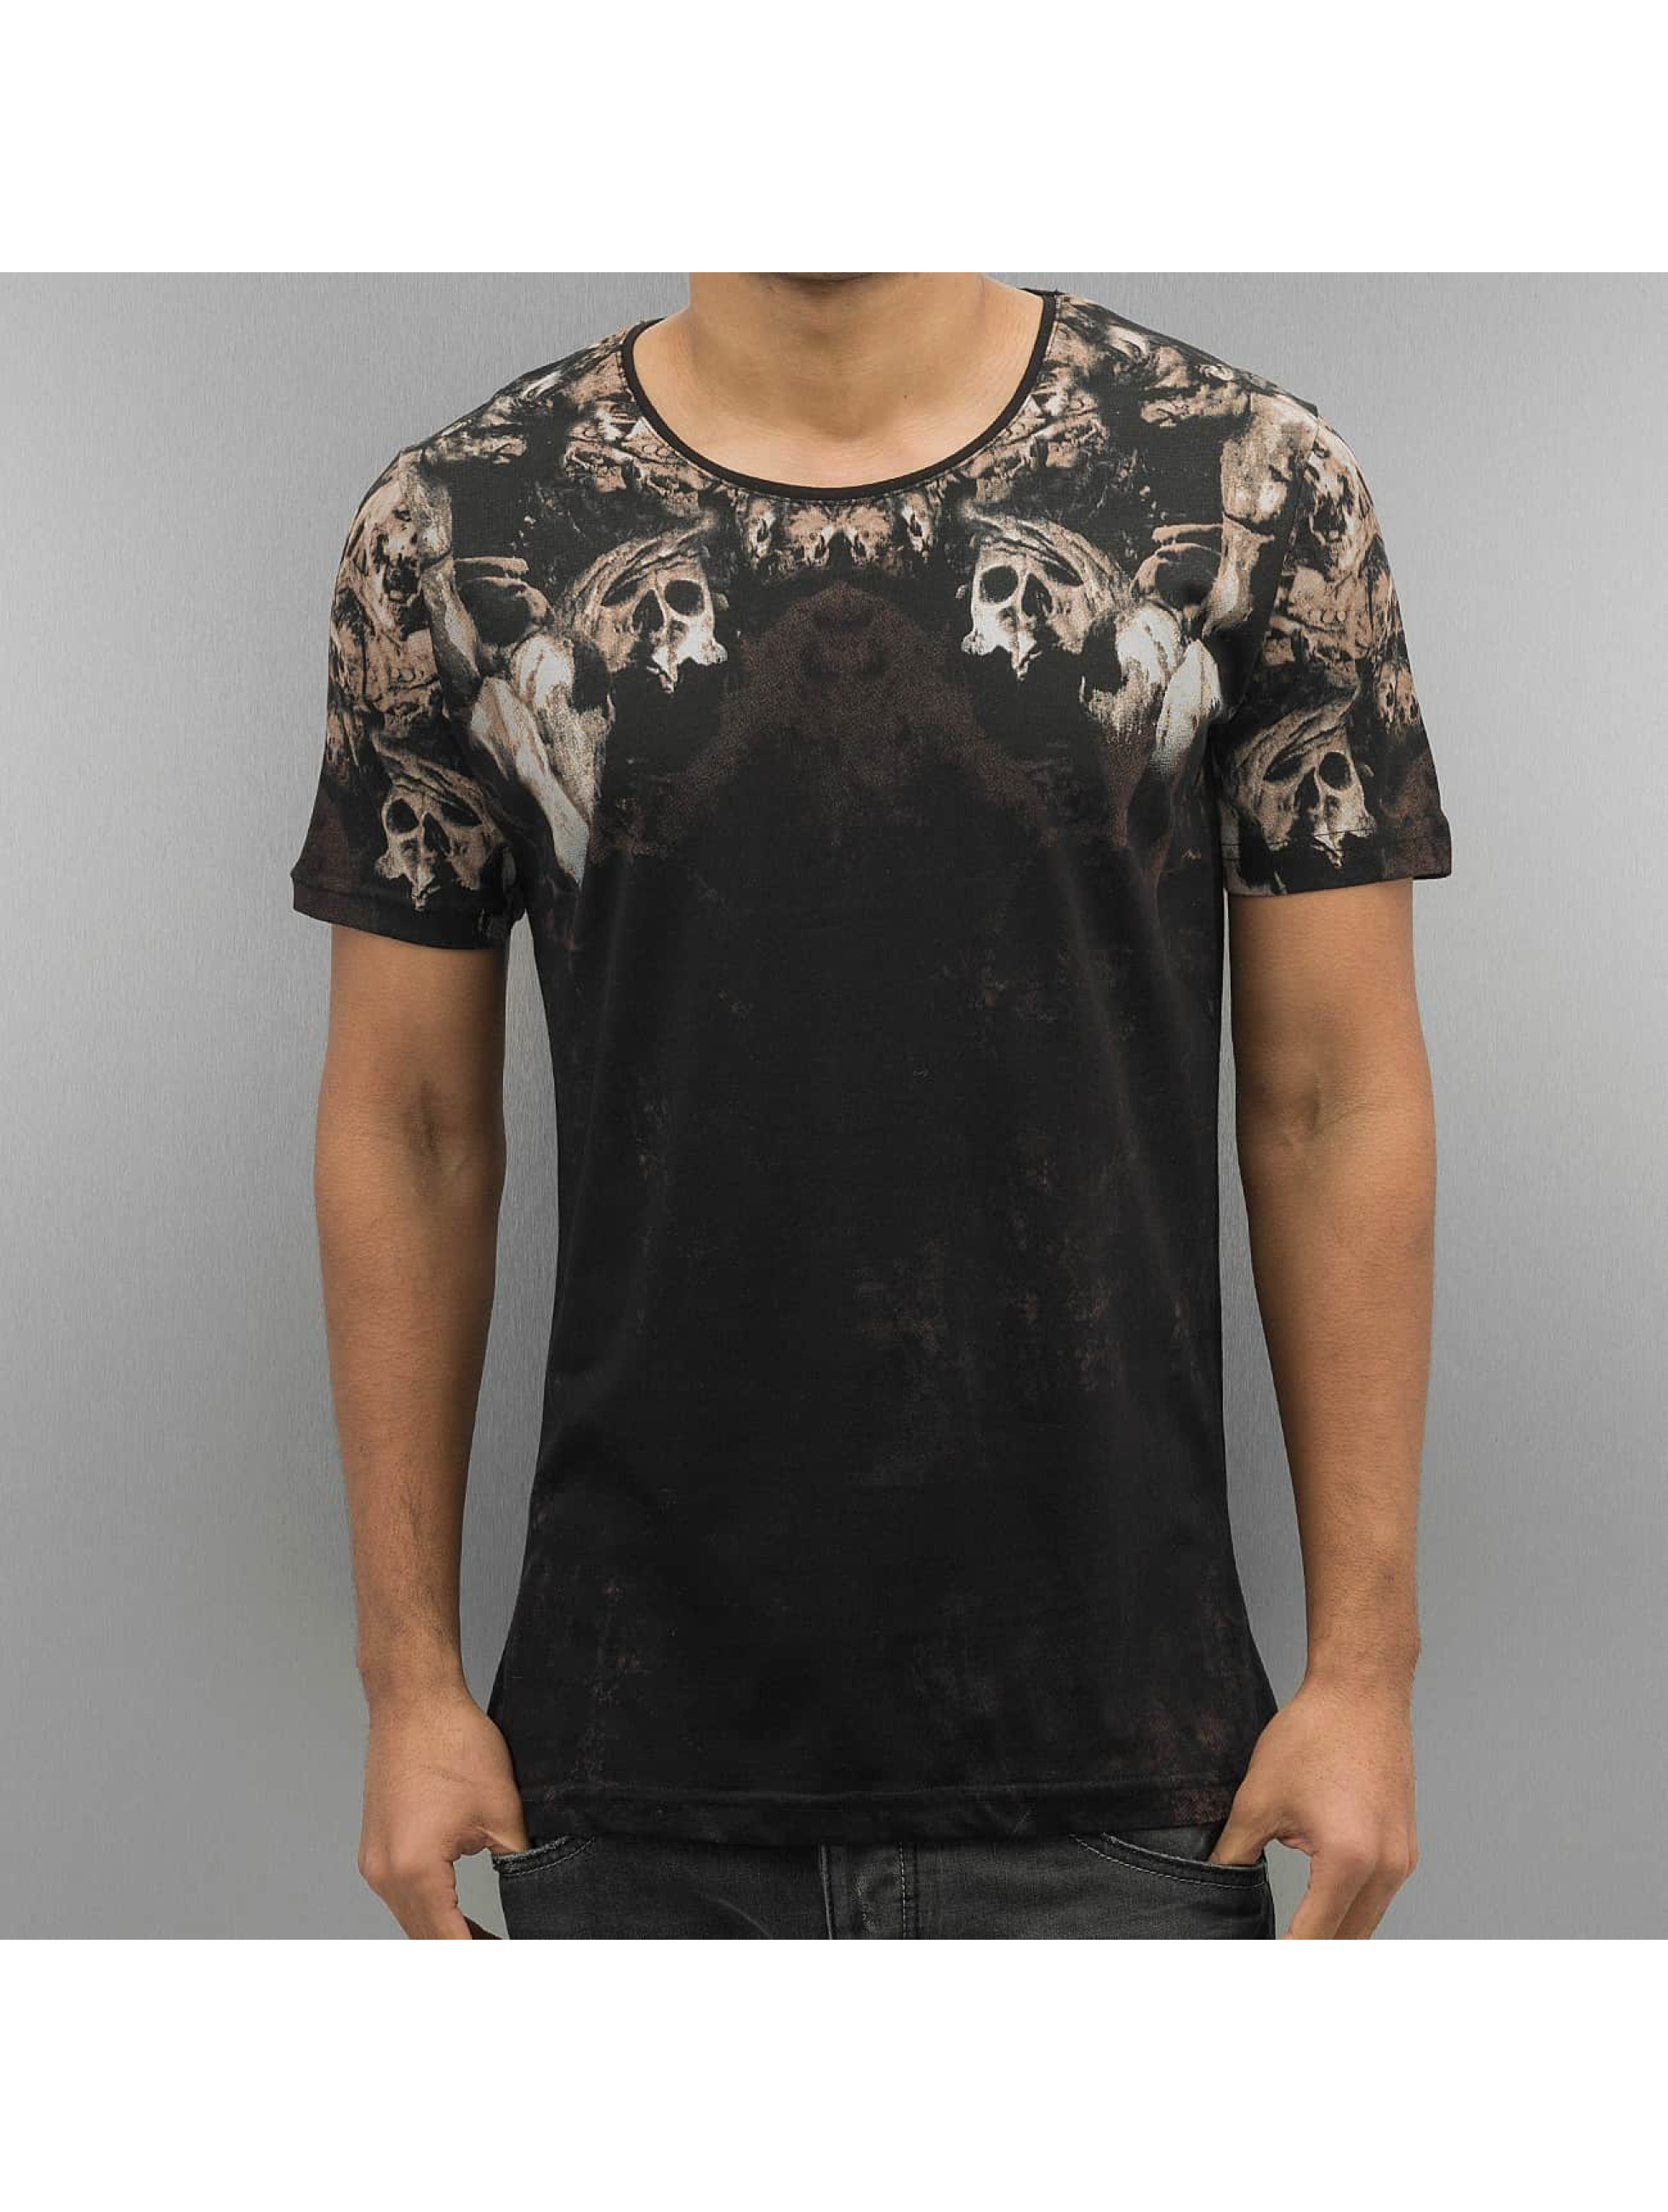 2Y / T-Shirt Skulls in black S